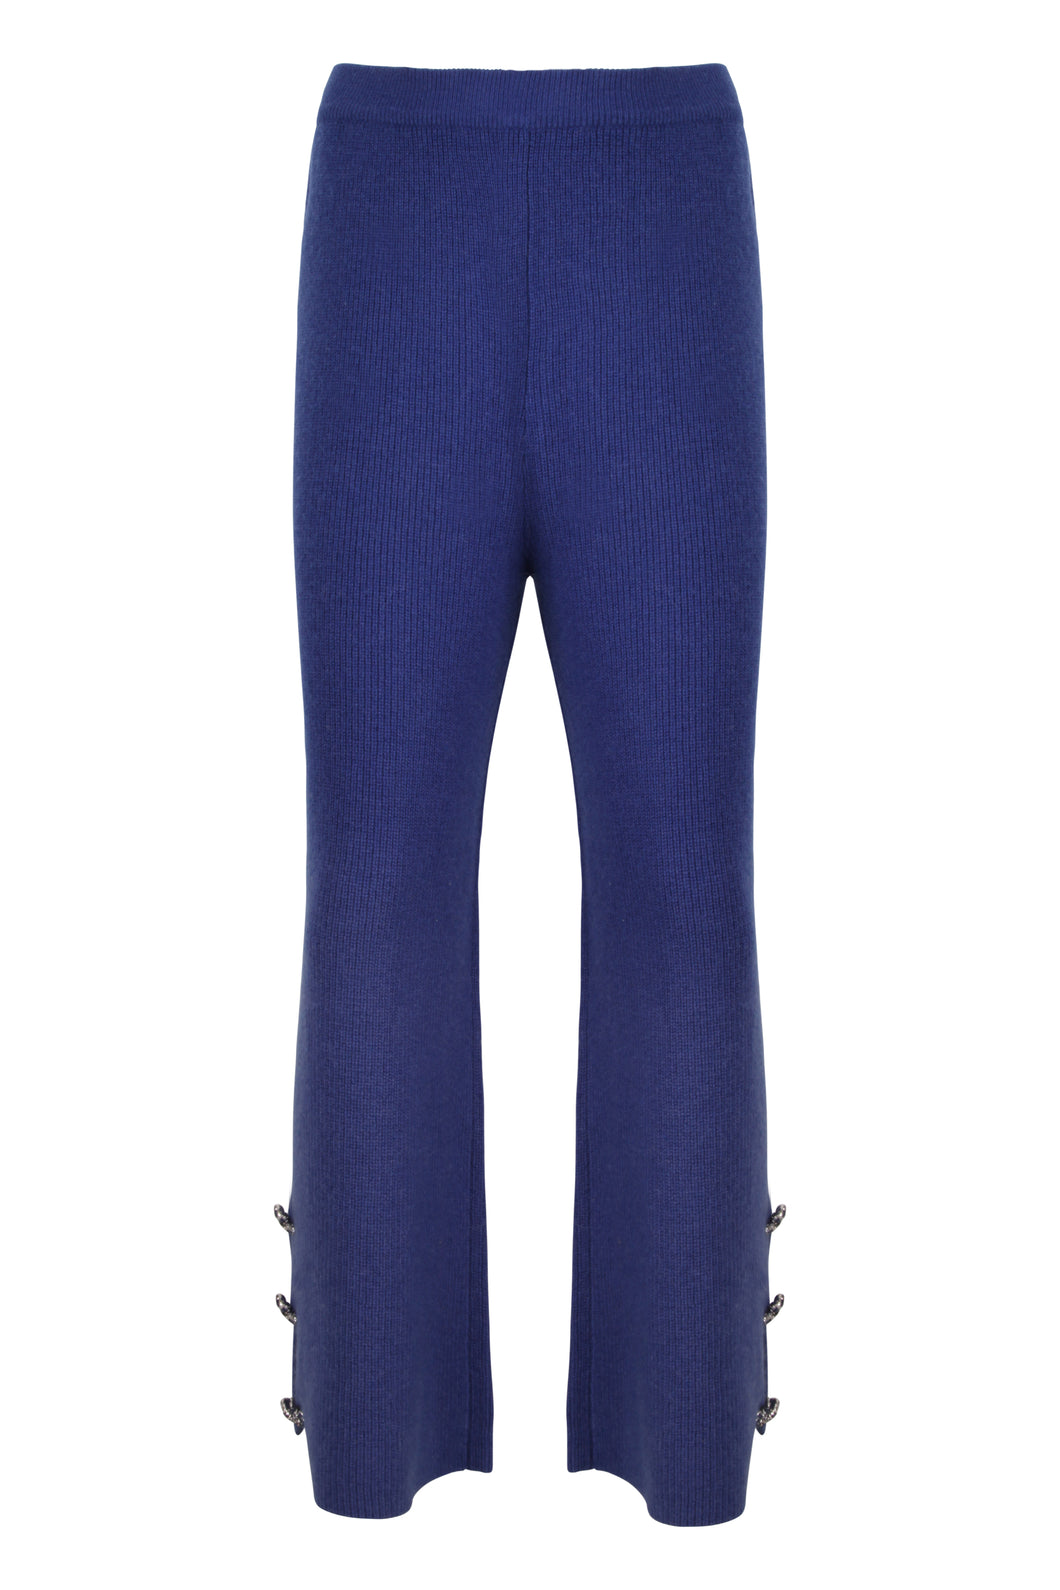 Blue Embellished Knitted Culottes